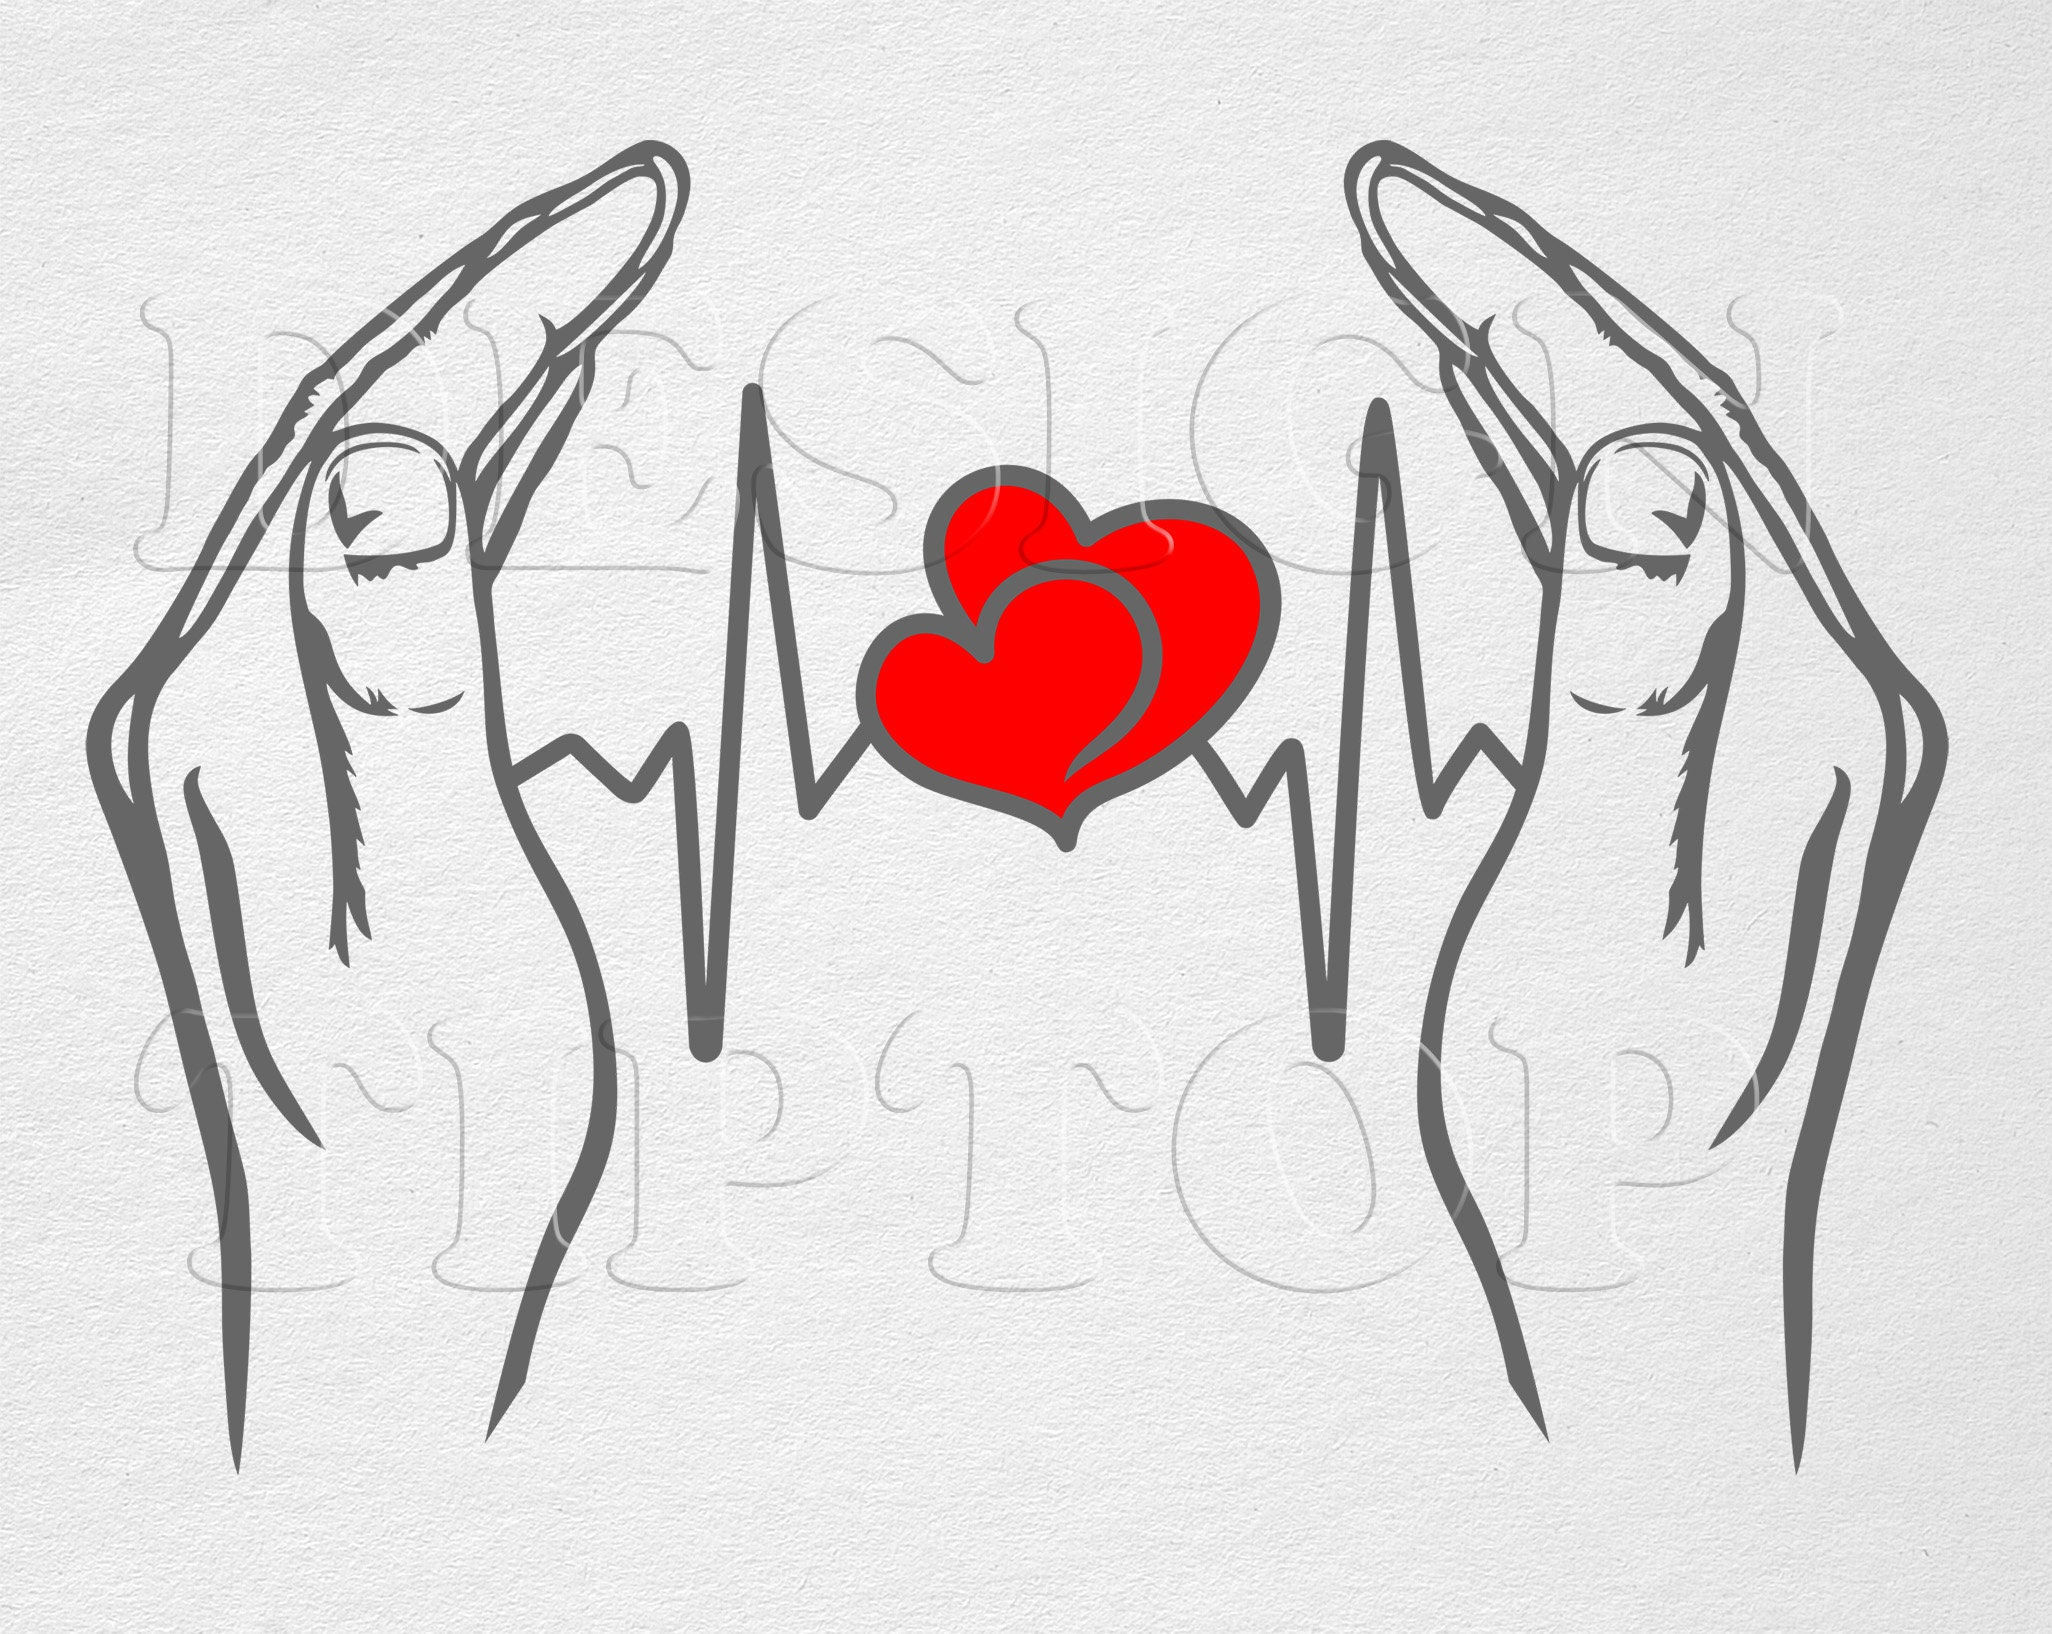 Hands With Heartbeat Svg Dxf Heartbeat Tattoo Laser Engraving Files Heartbeat Embroidery Design Creative Designs Png Silhouette